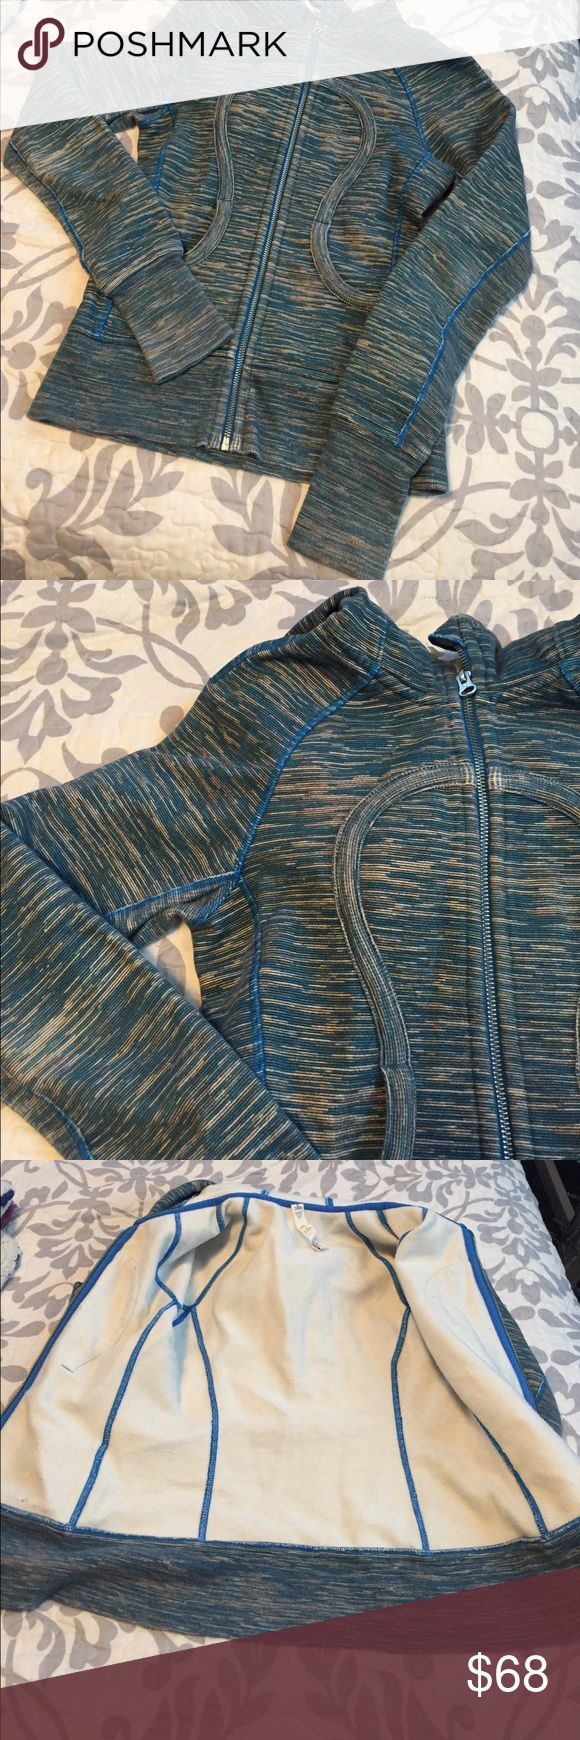 • blue lululemon jacket • Work and washed once, in like new condition. No flaws. Super soft on the inside. Size 2. Has thumb holes. Same or next day shipping. Reasonable offers accepted. For my reference only: item #60 lululemon athletica Jackets & Coats